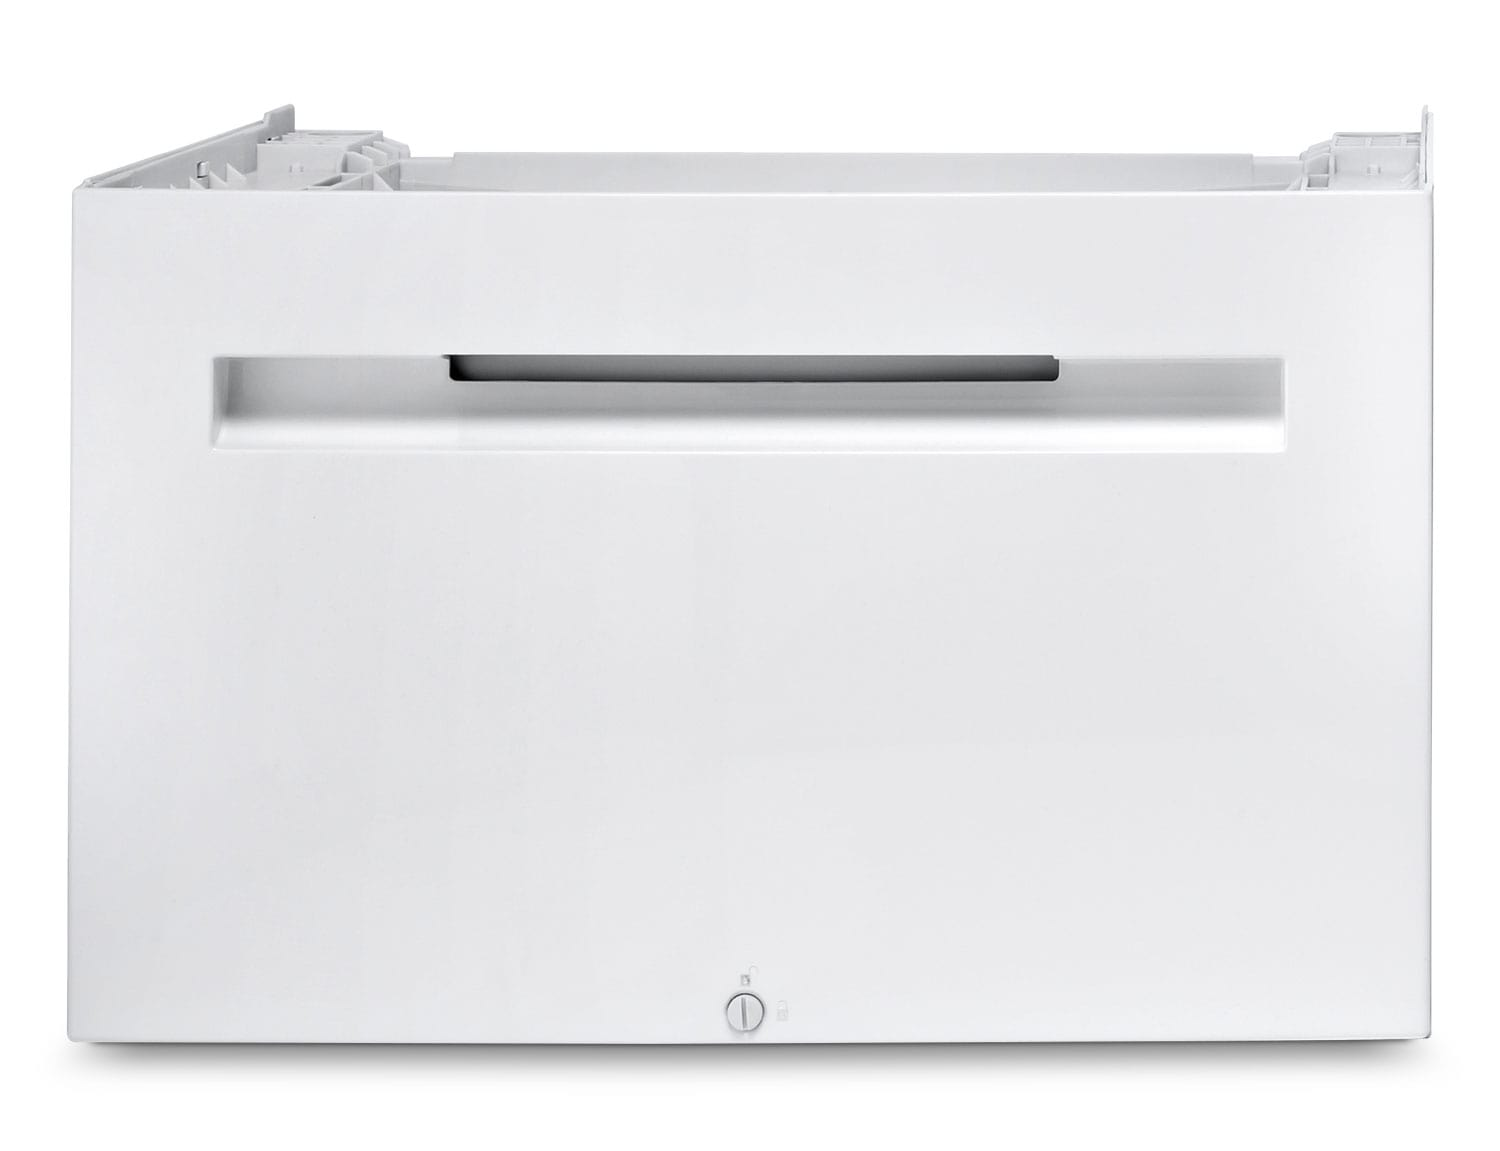 Bosch Washer Pedestal with Storage Drawer – White